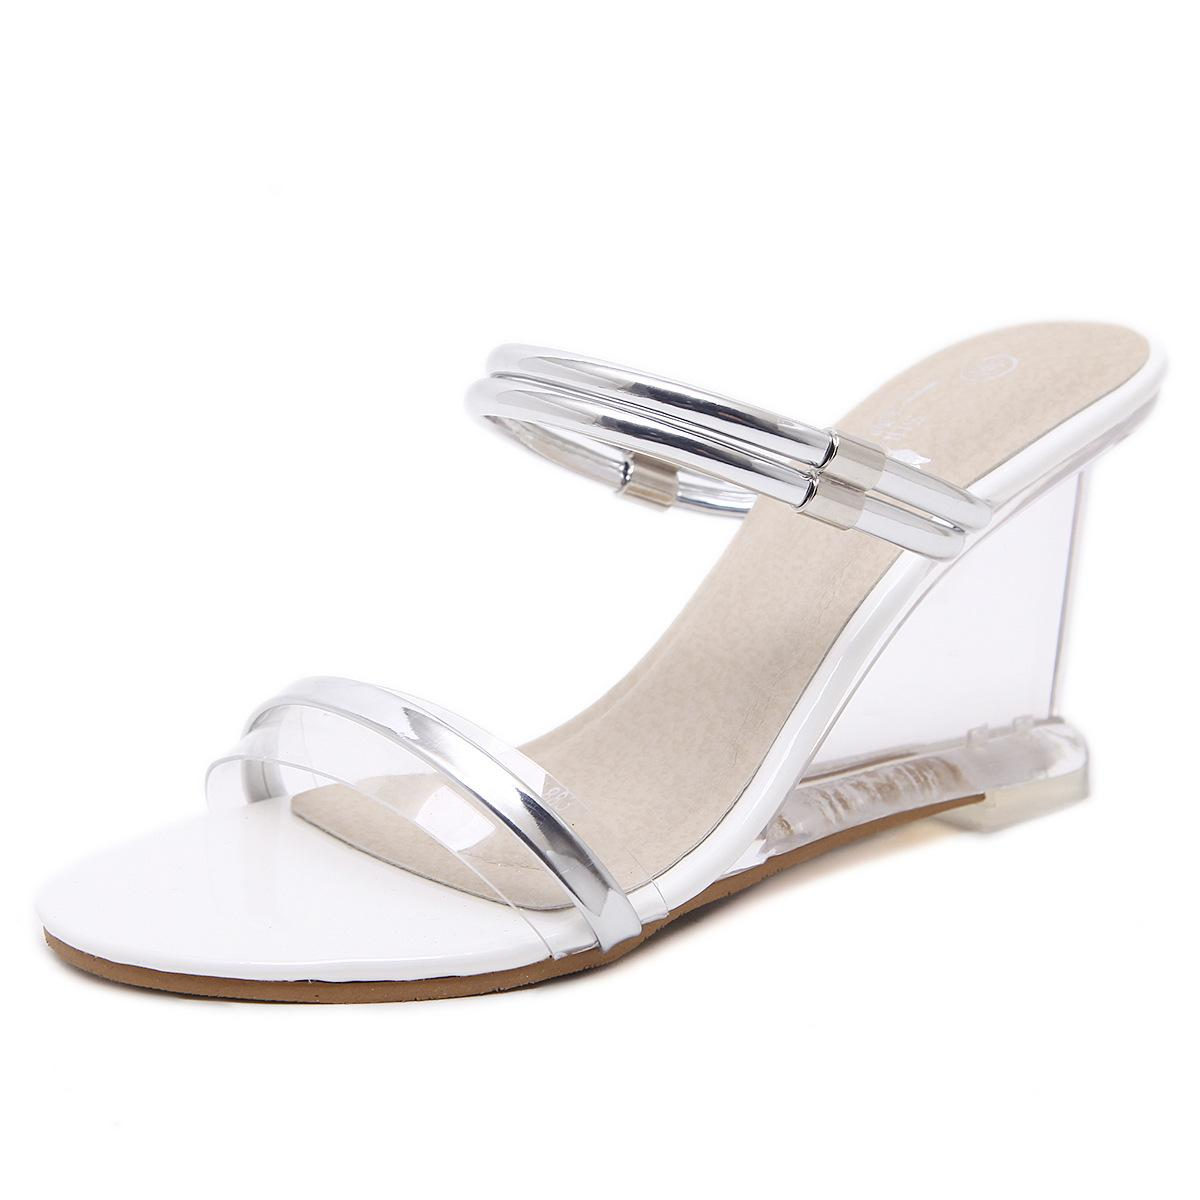 Fashion Summer Women Sandals Peep Toe 8.5cm Wedge Heels Crystal Transparent Women Sandals Size 34-40